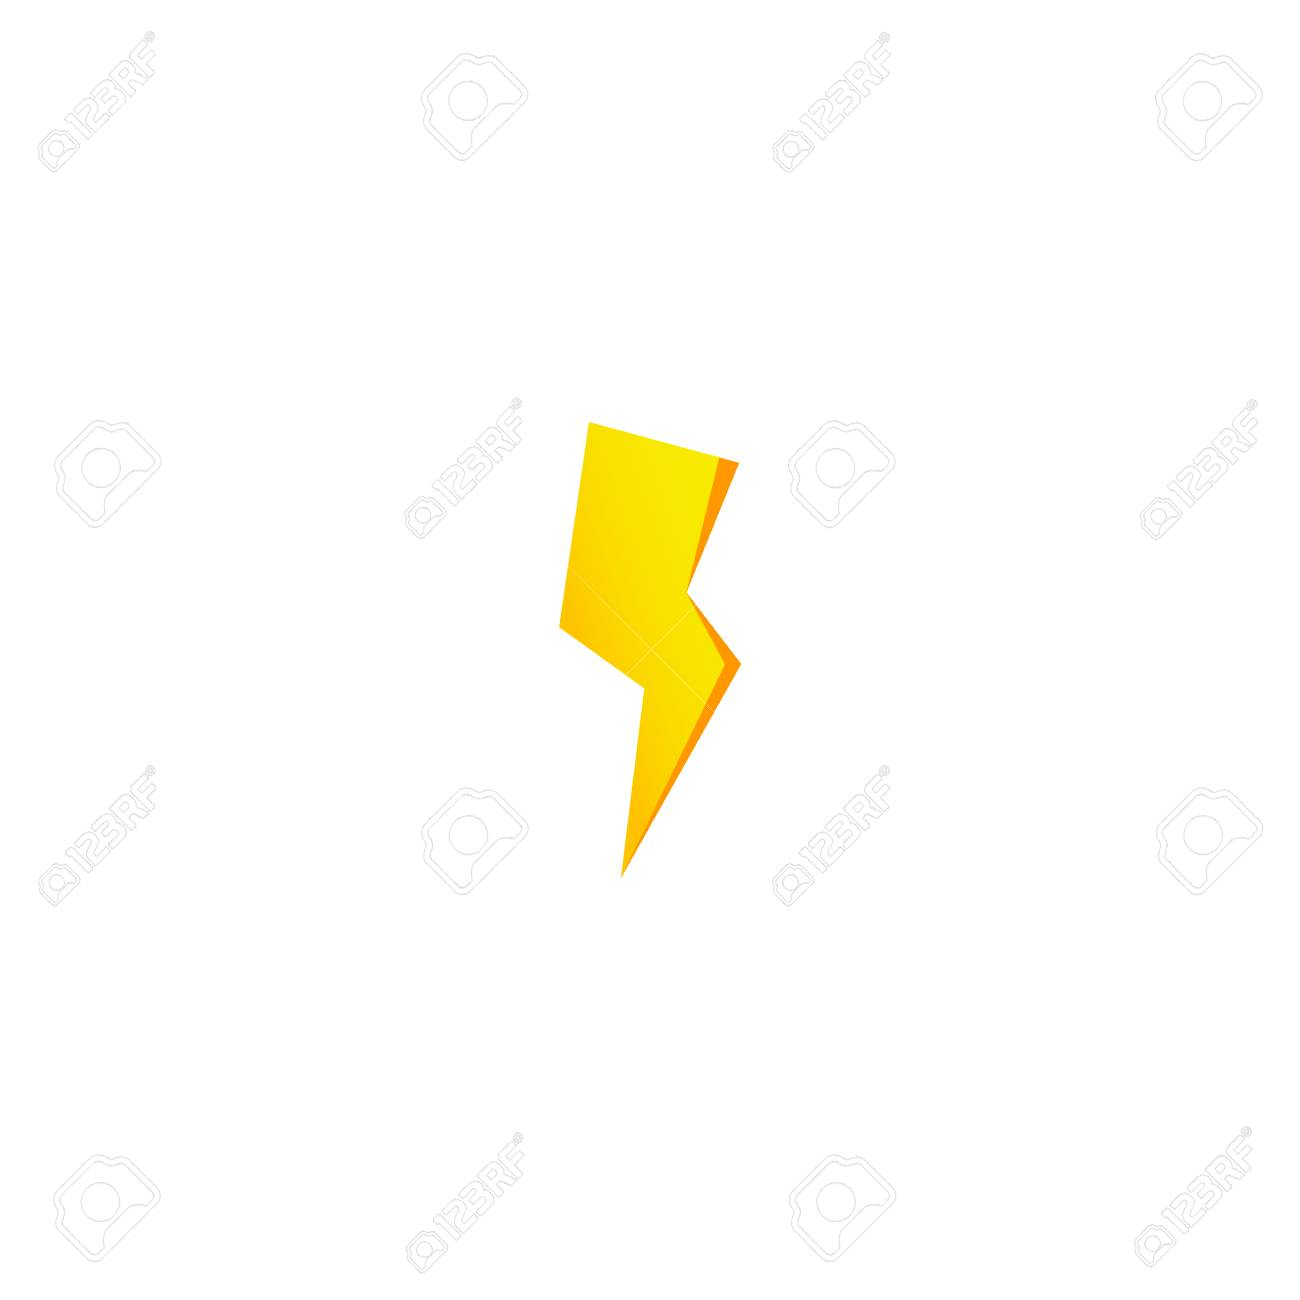 Simple Yellow Thunderbolt Icon Thunder Bolt And High Voltage Royalty Free Cliparts Vectors And Stock Illustration Image 114439743